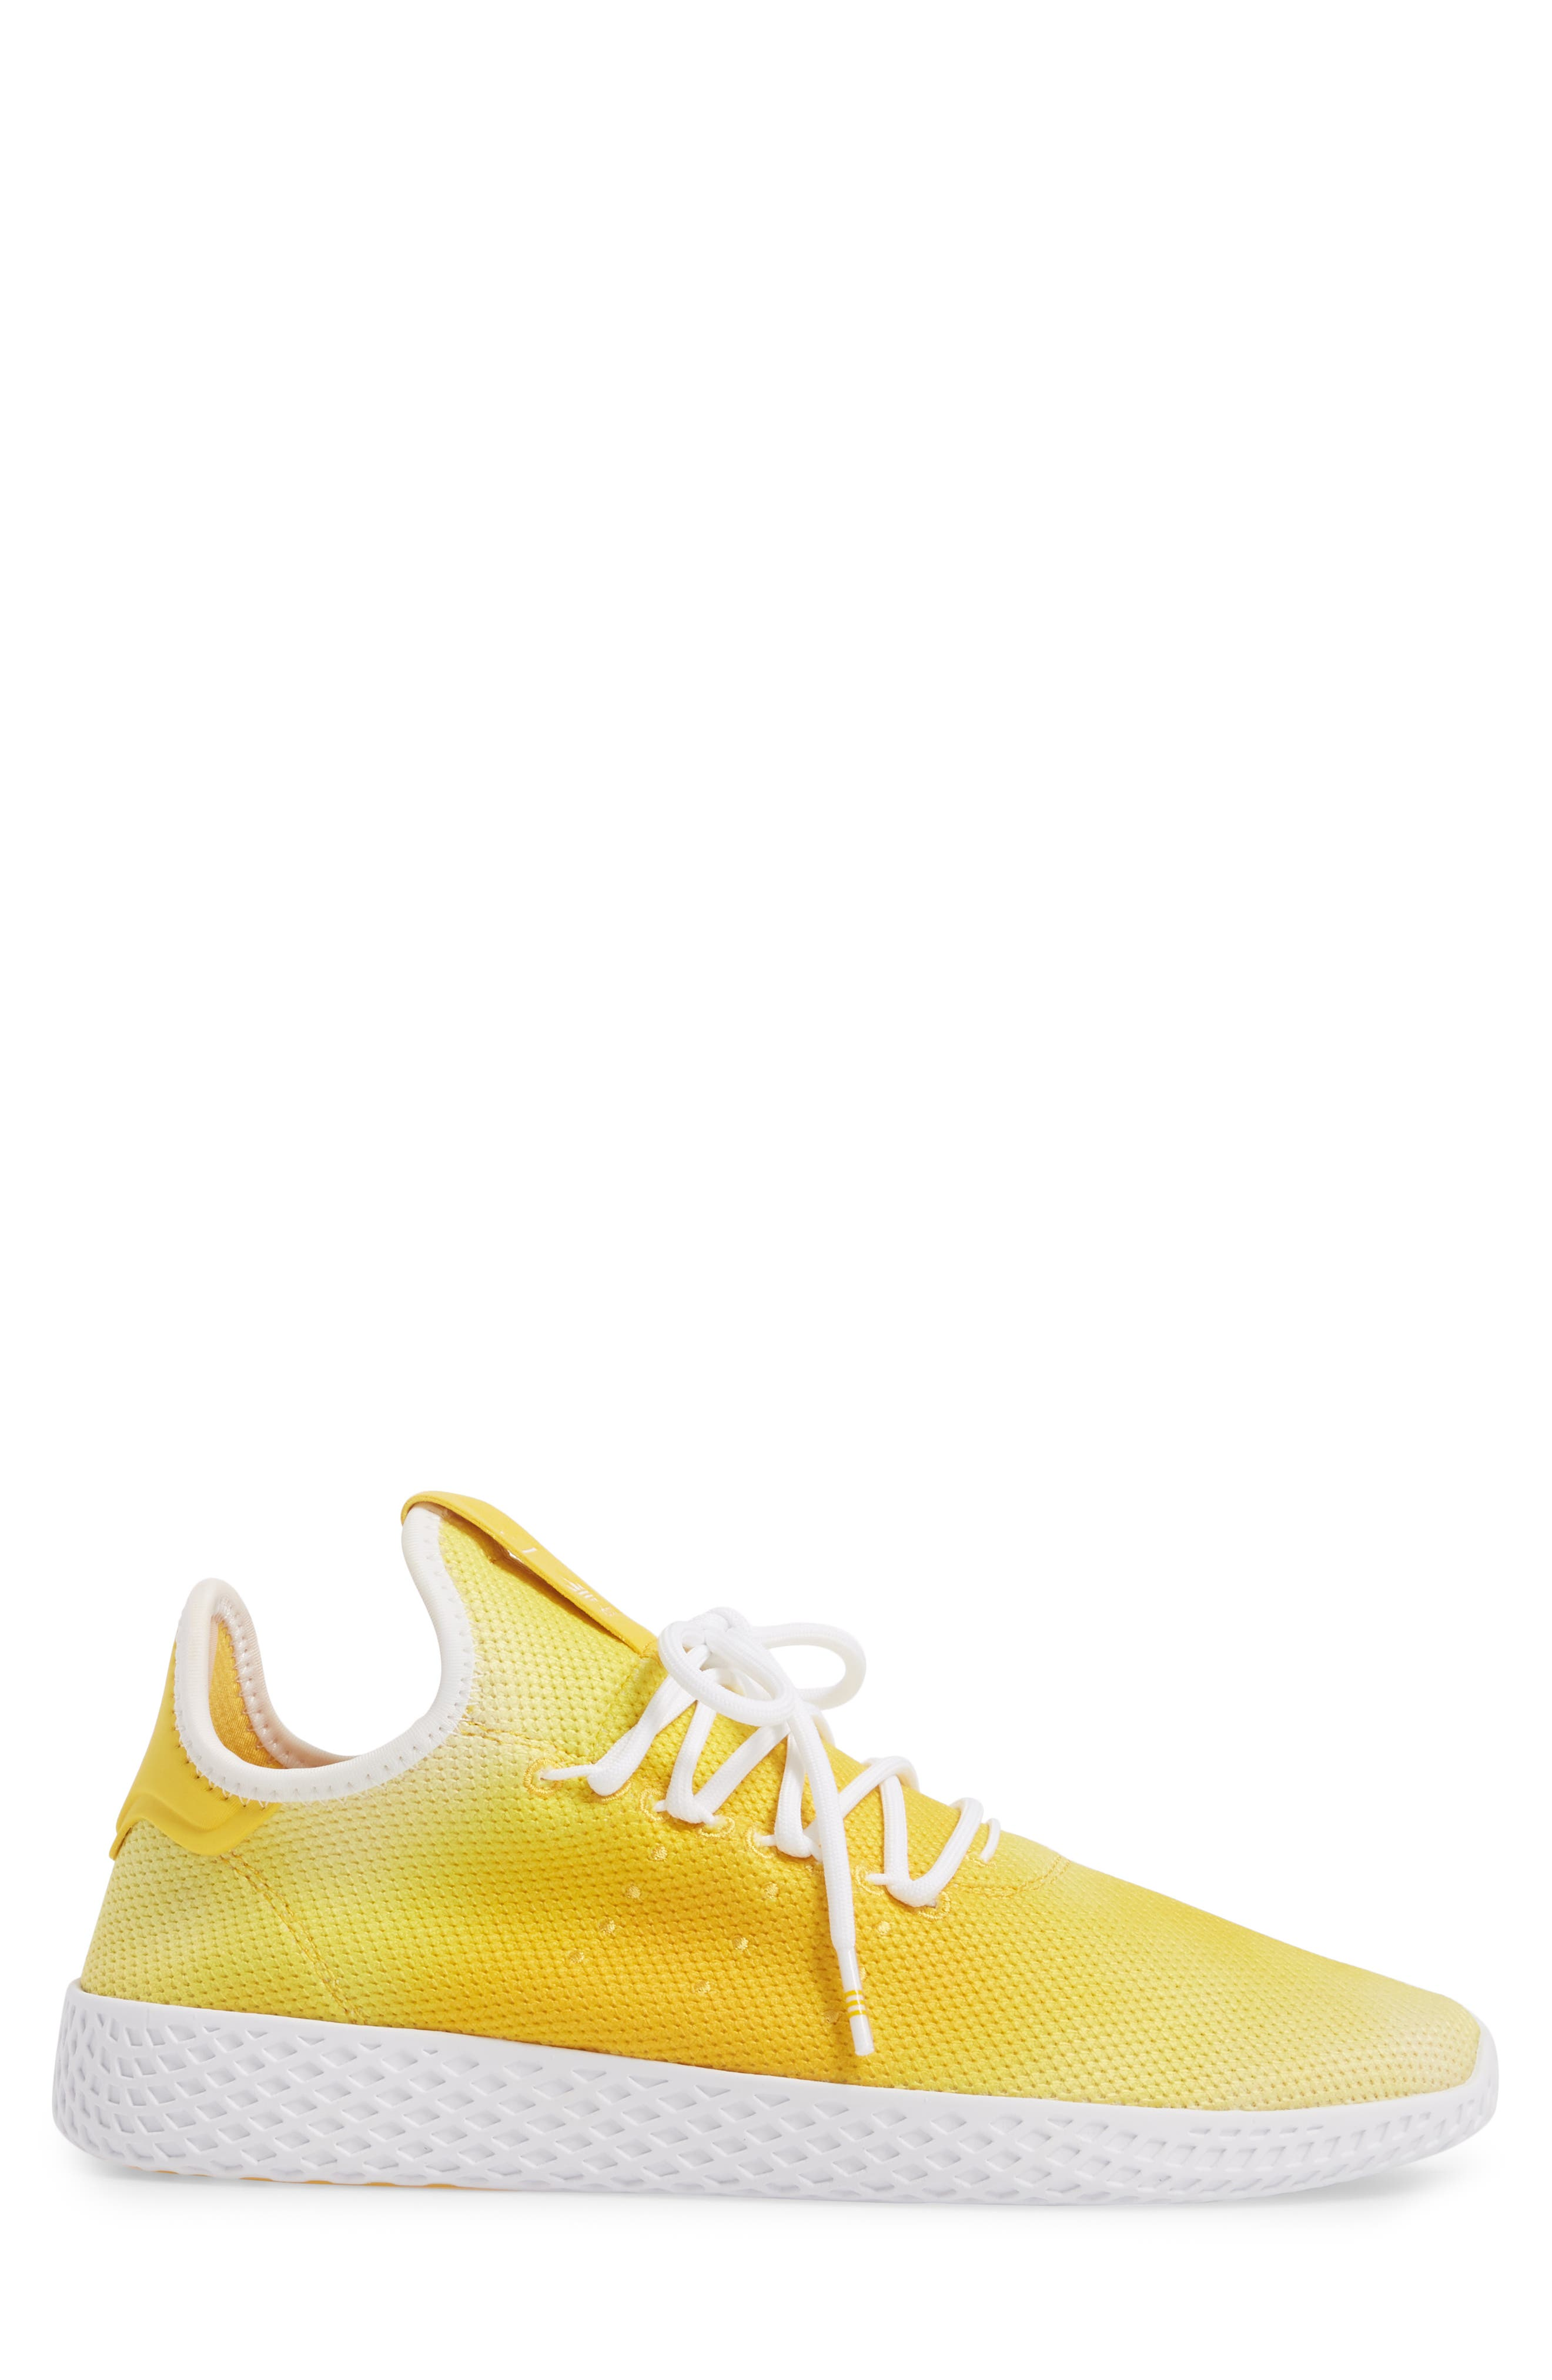 Pharrell Williams Tennis Hu Sneaker,                             Alternate thumbnail 3, color,                             Yellow/ White